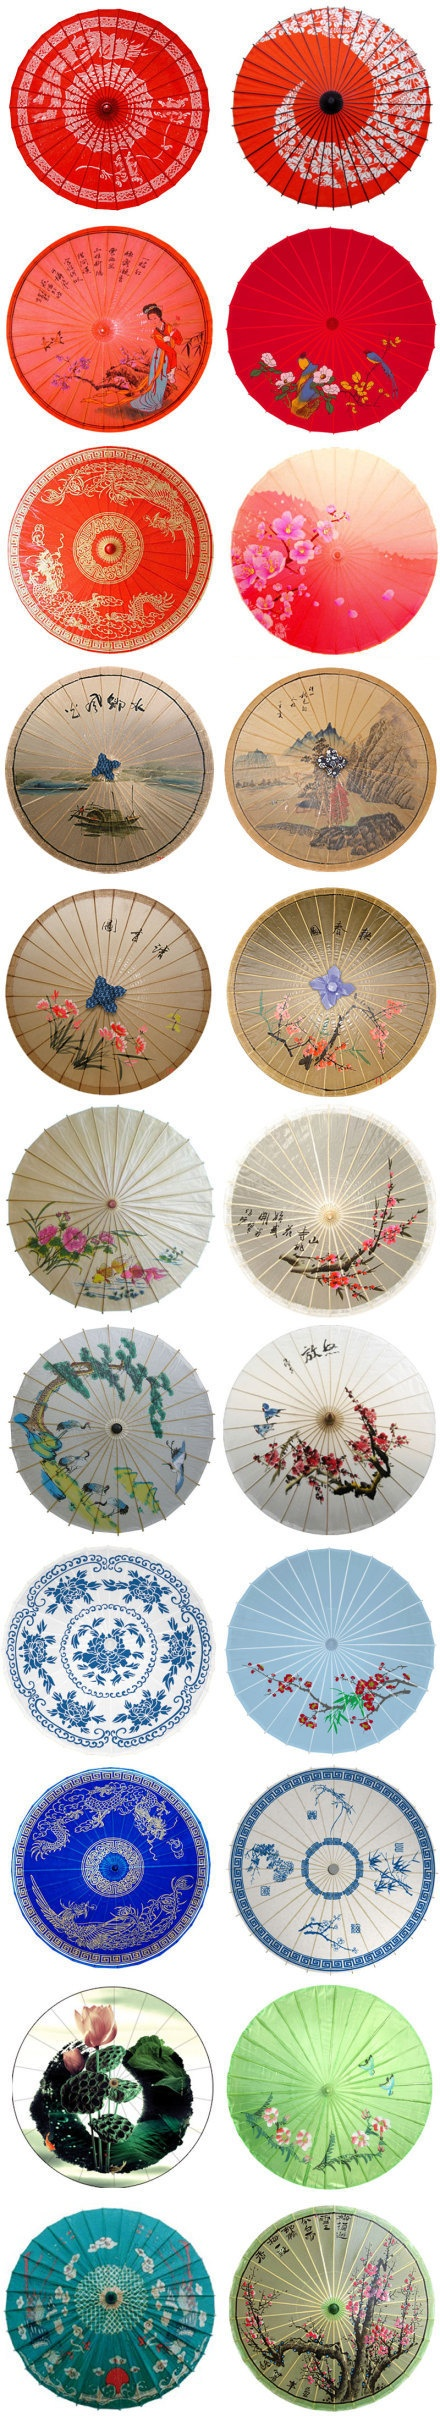 beauty of umbrella. These could be re-created as plates for a wall installation.